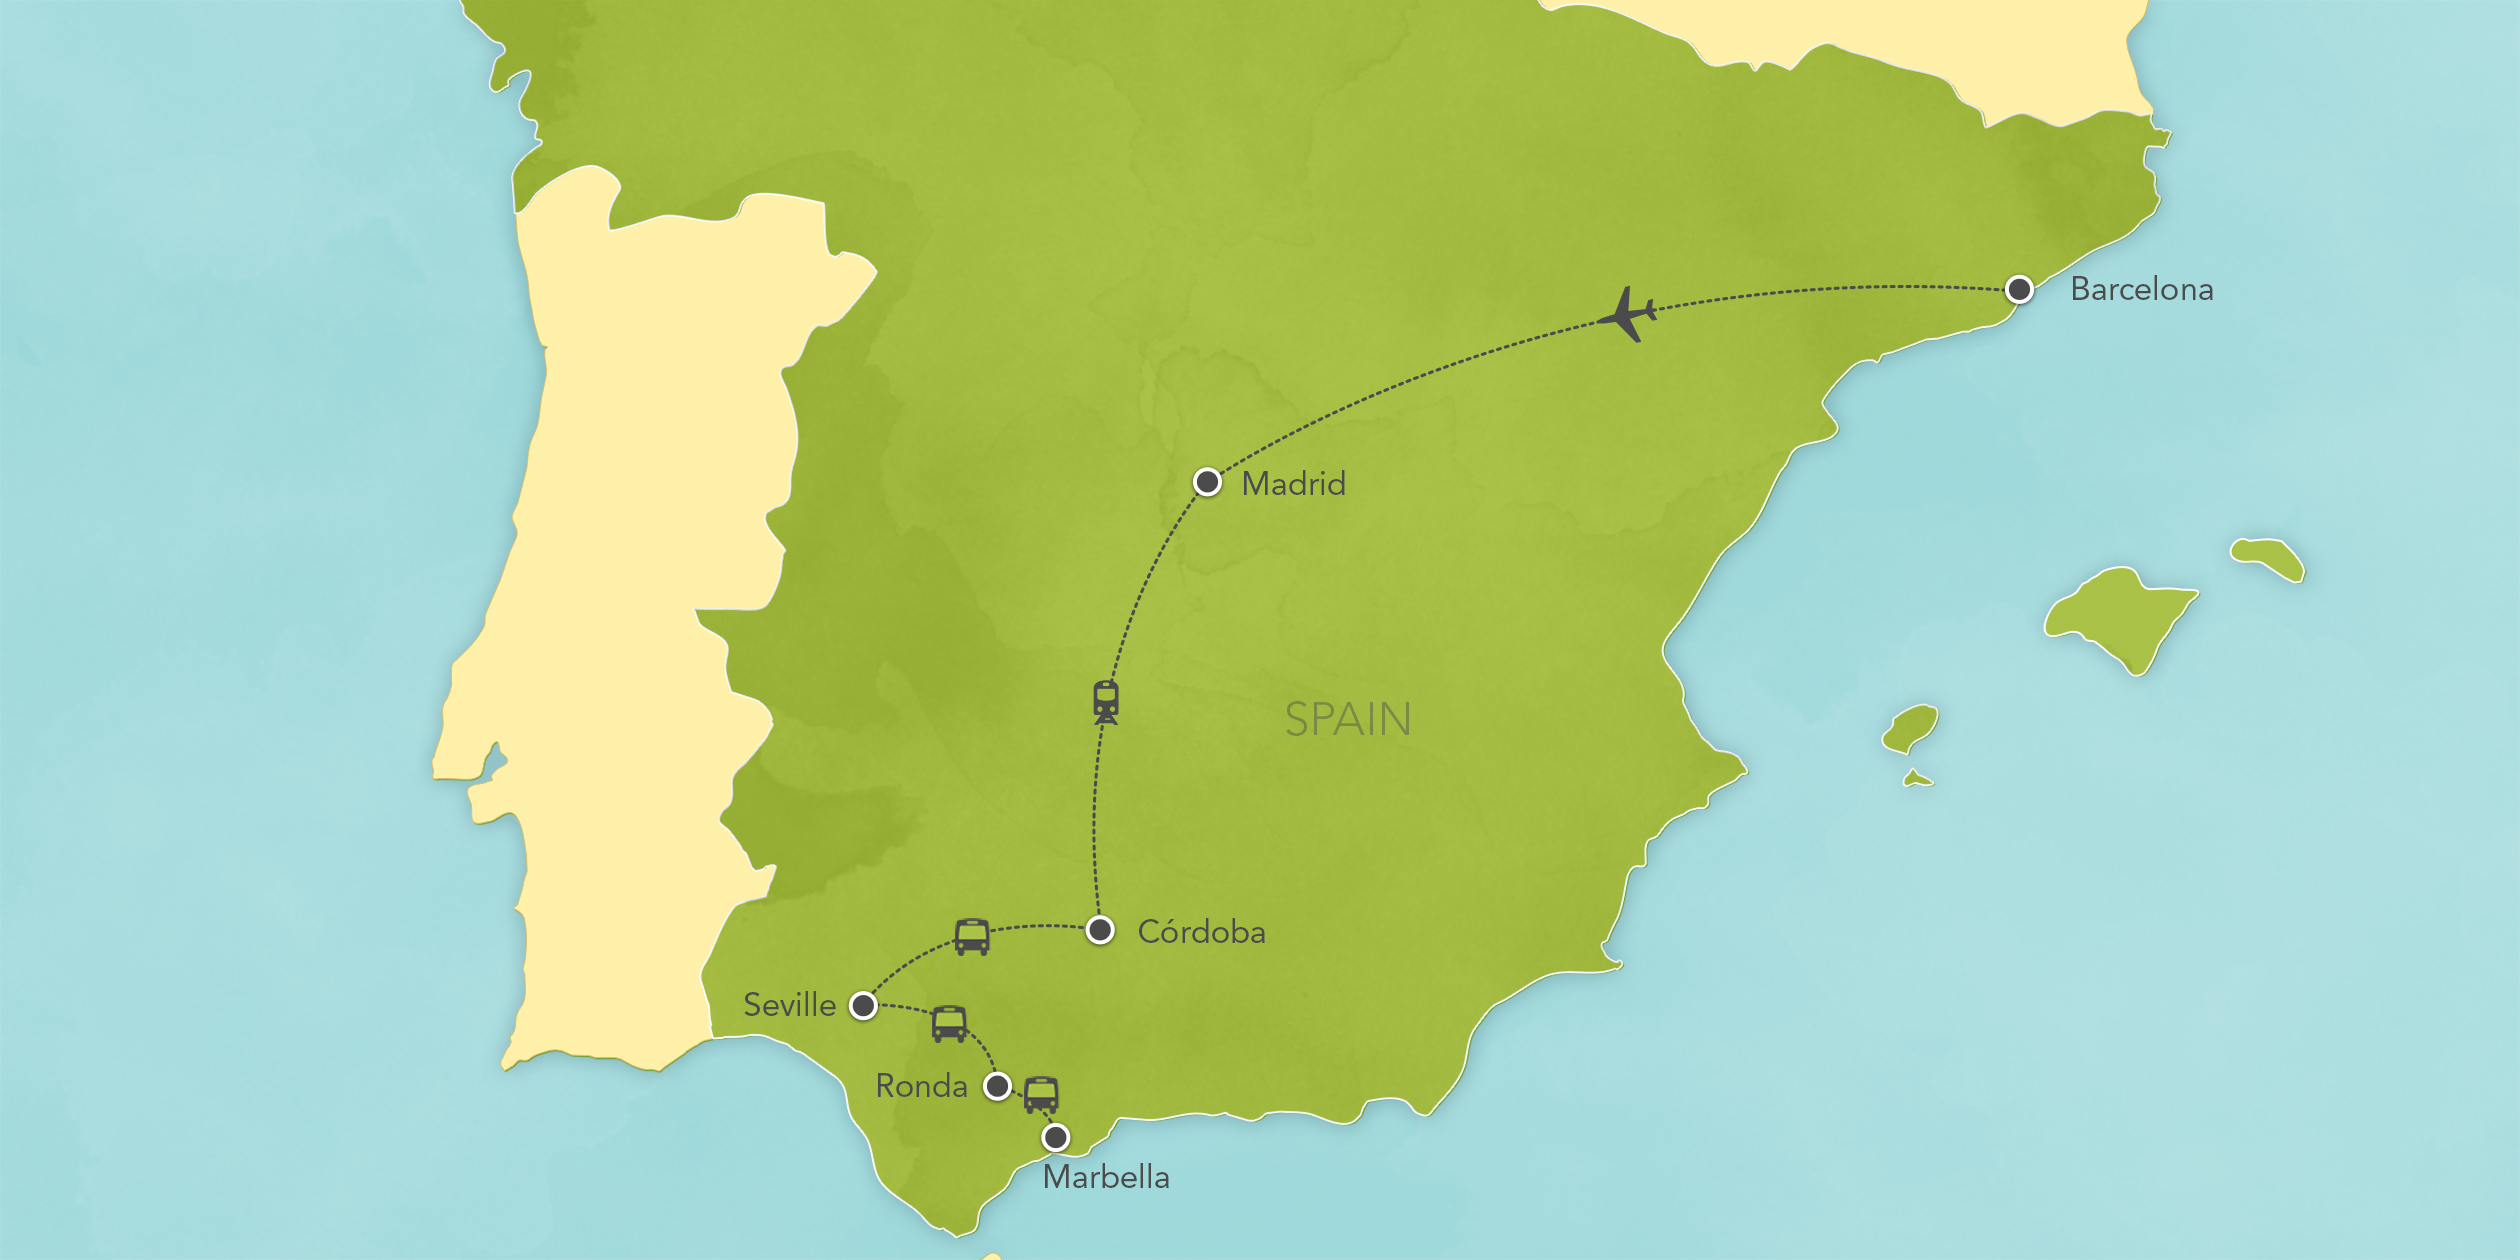 Itinerary map of Spain: Madrid, Segovia, Córdoba, Seville, Ronda, Marbella and Barcelona 2017